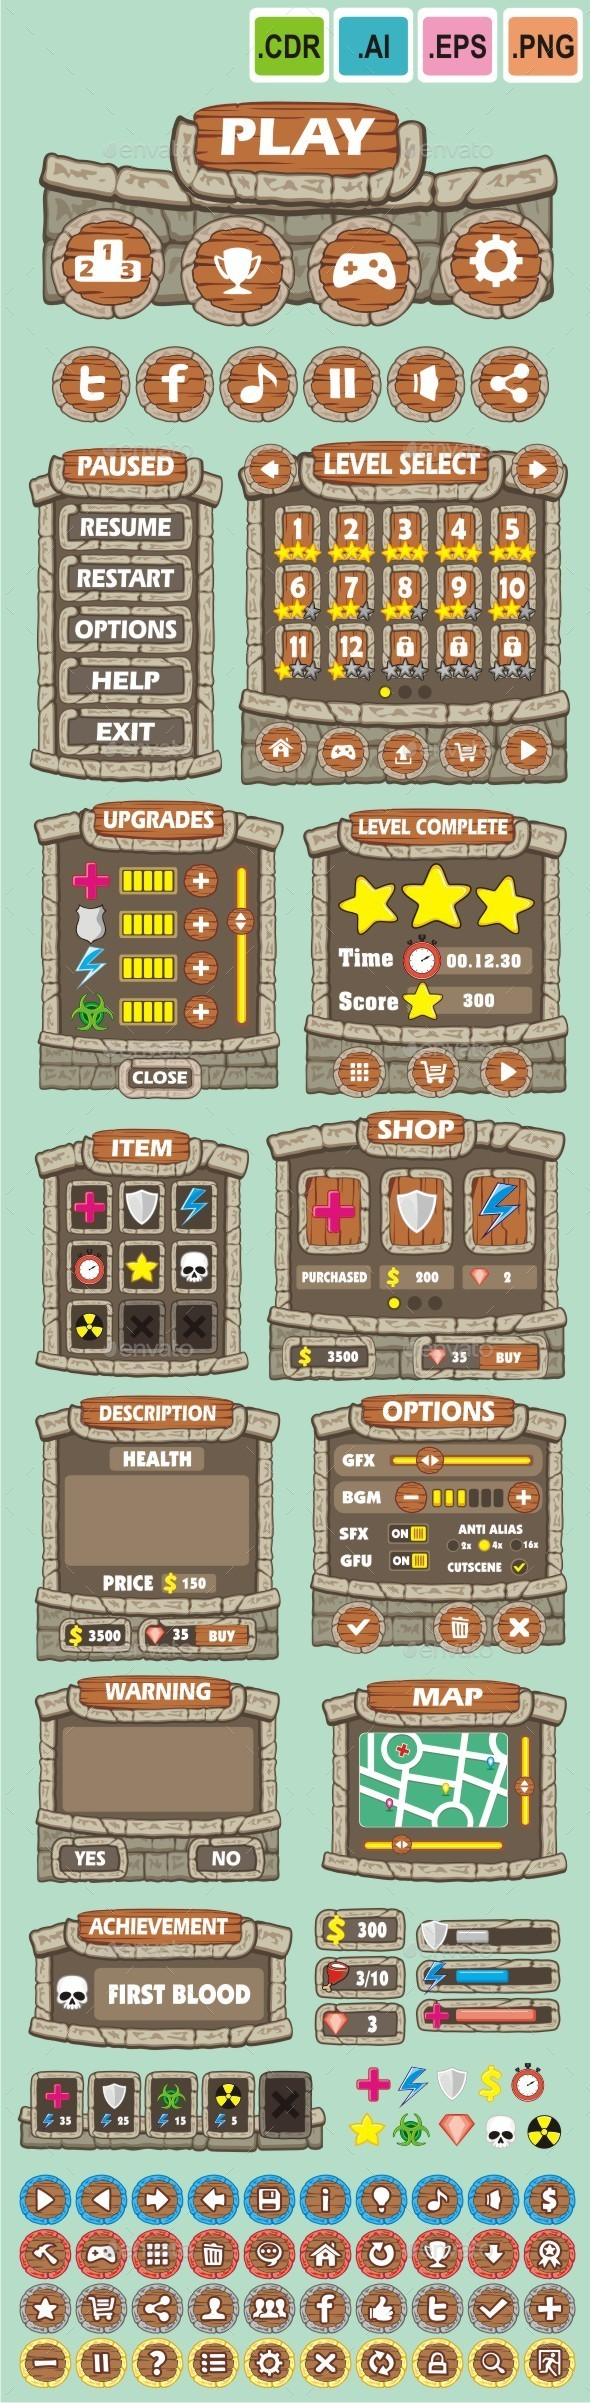 cartoon game gui pack 16 - User Interfaces Game Assets